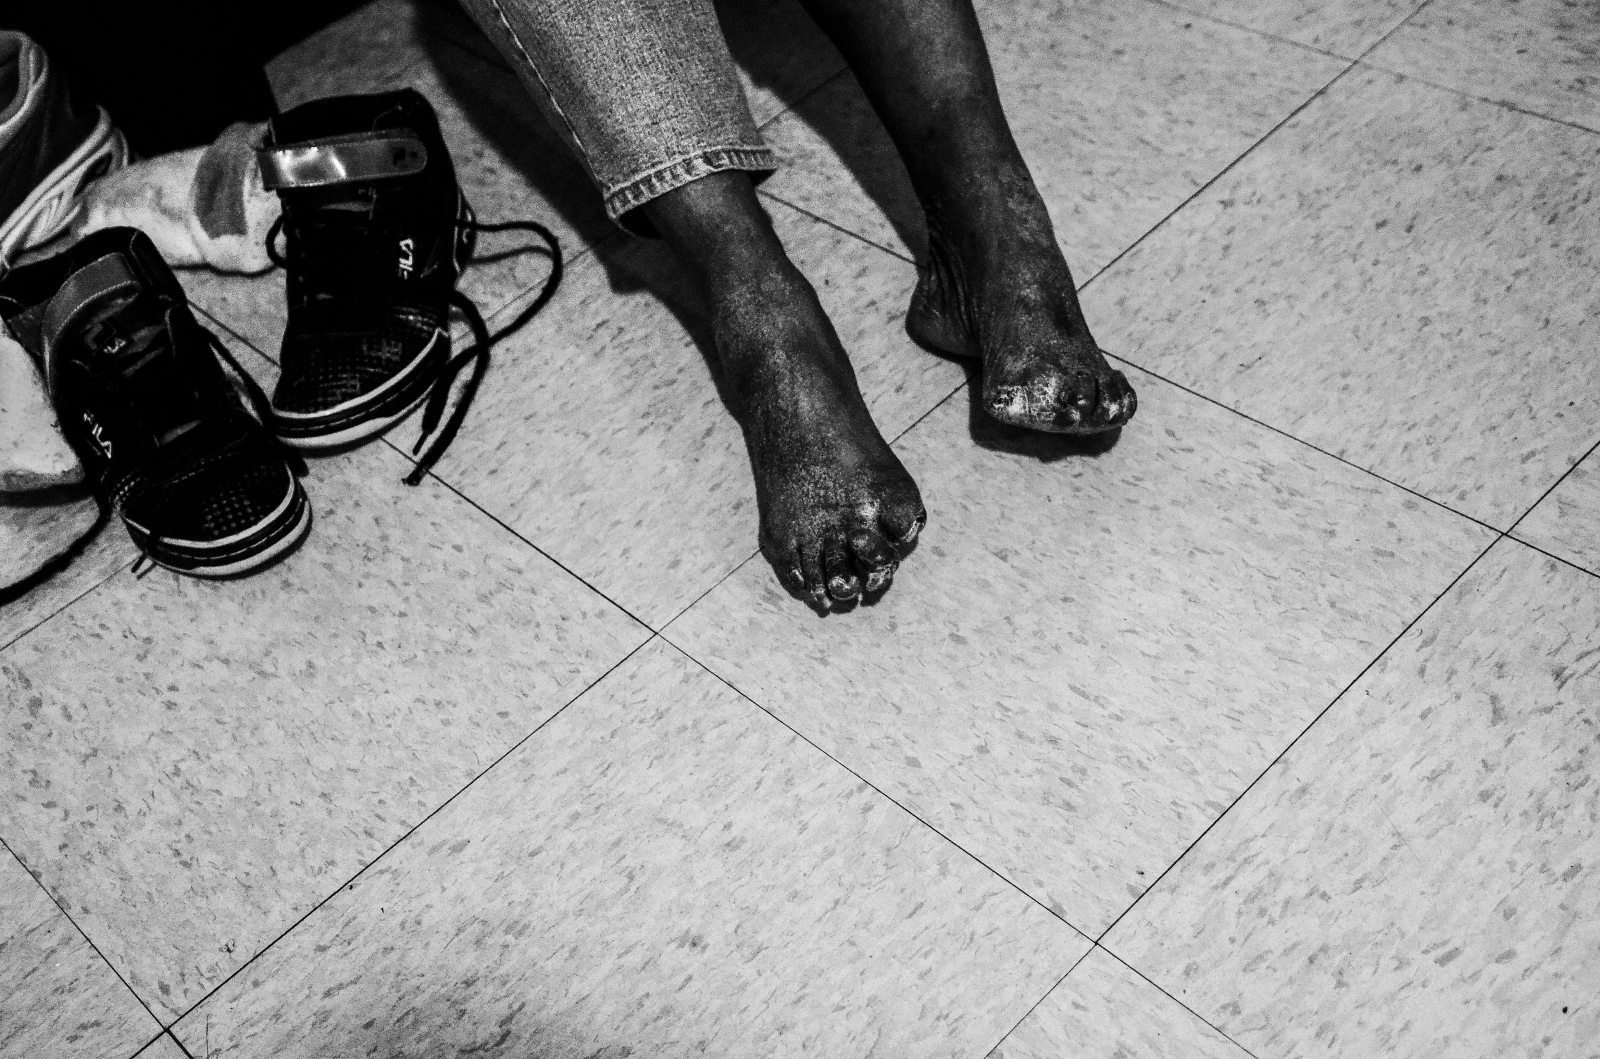 Wanda's toes were amputated due to contracting gangrene while using heroin.